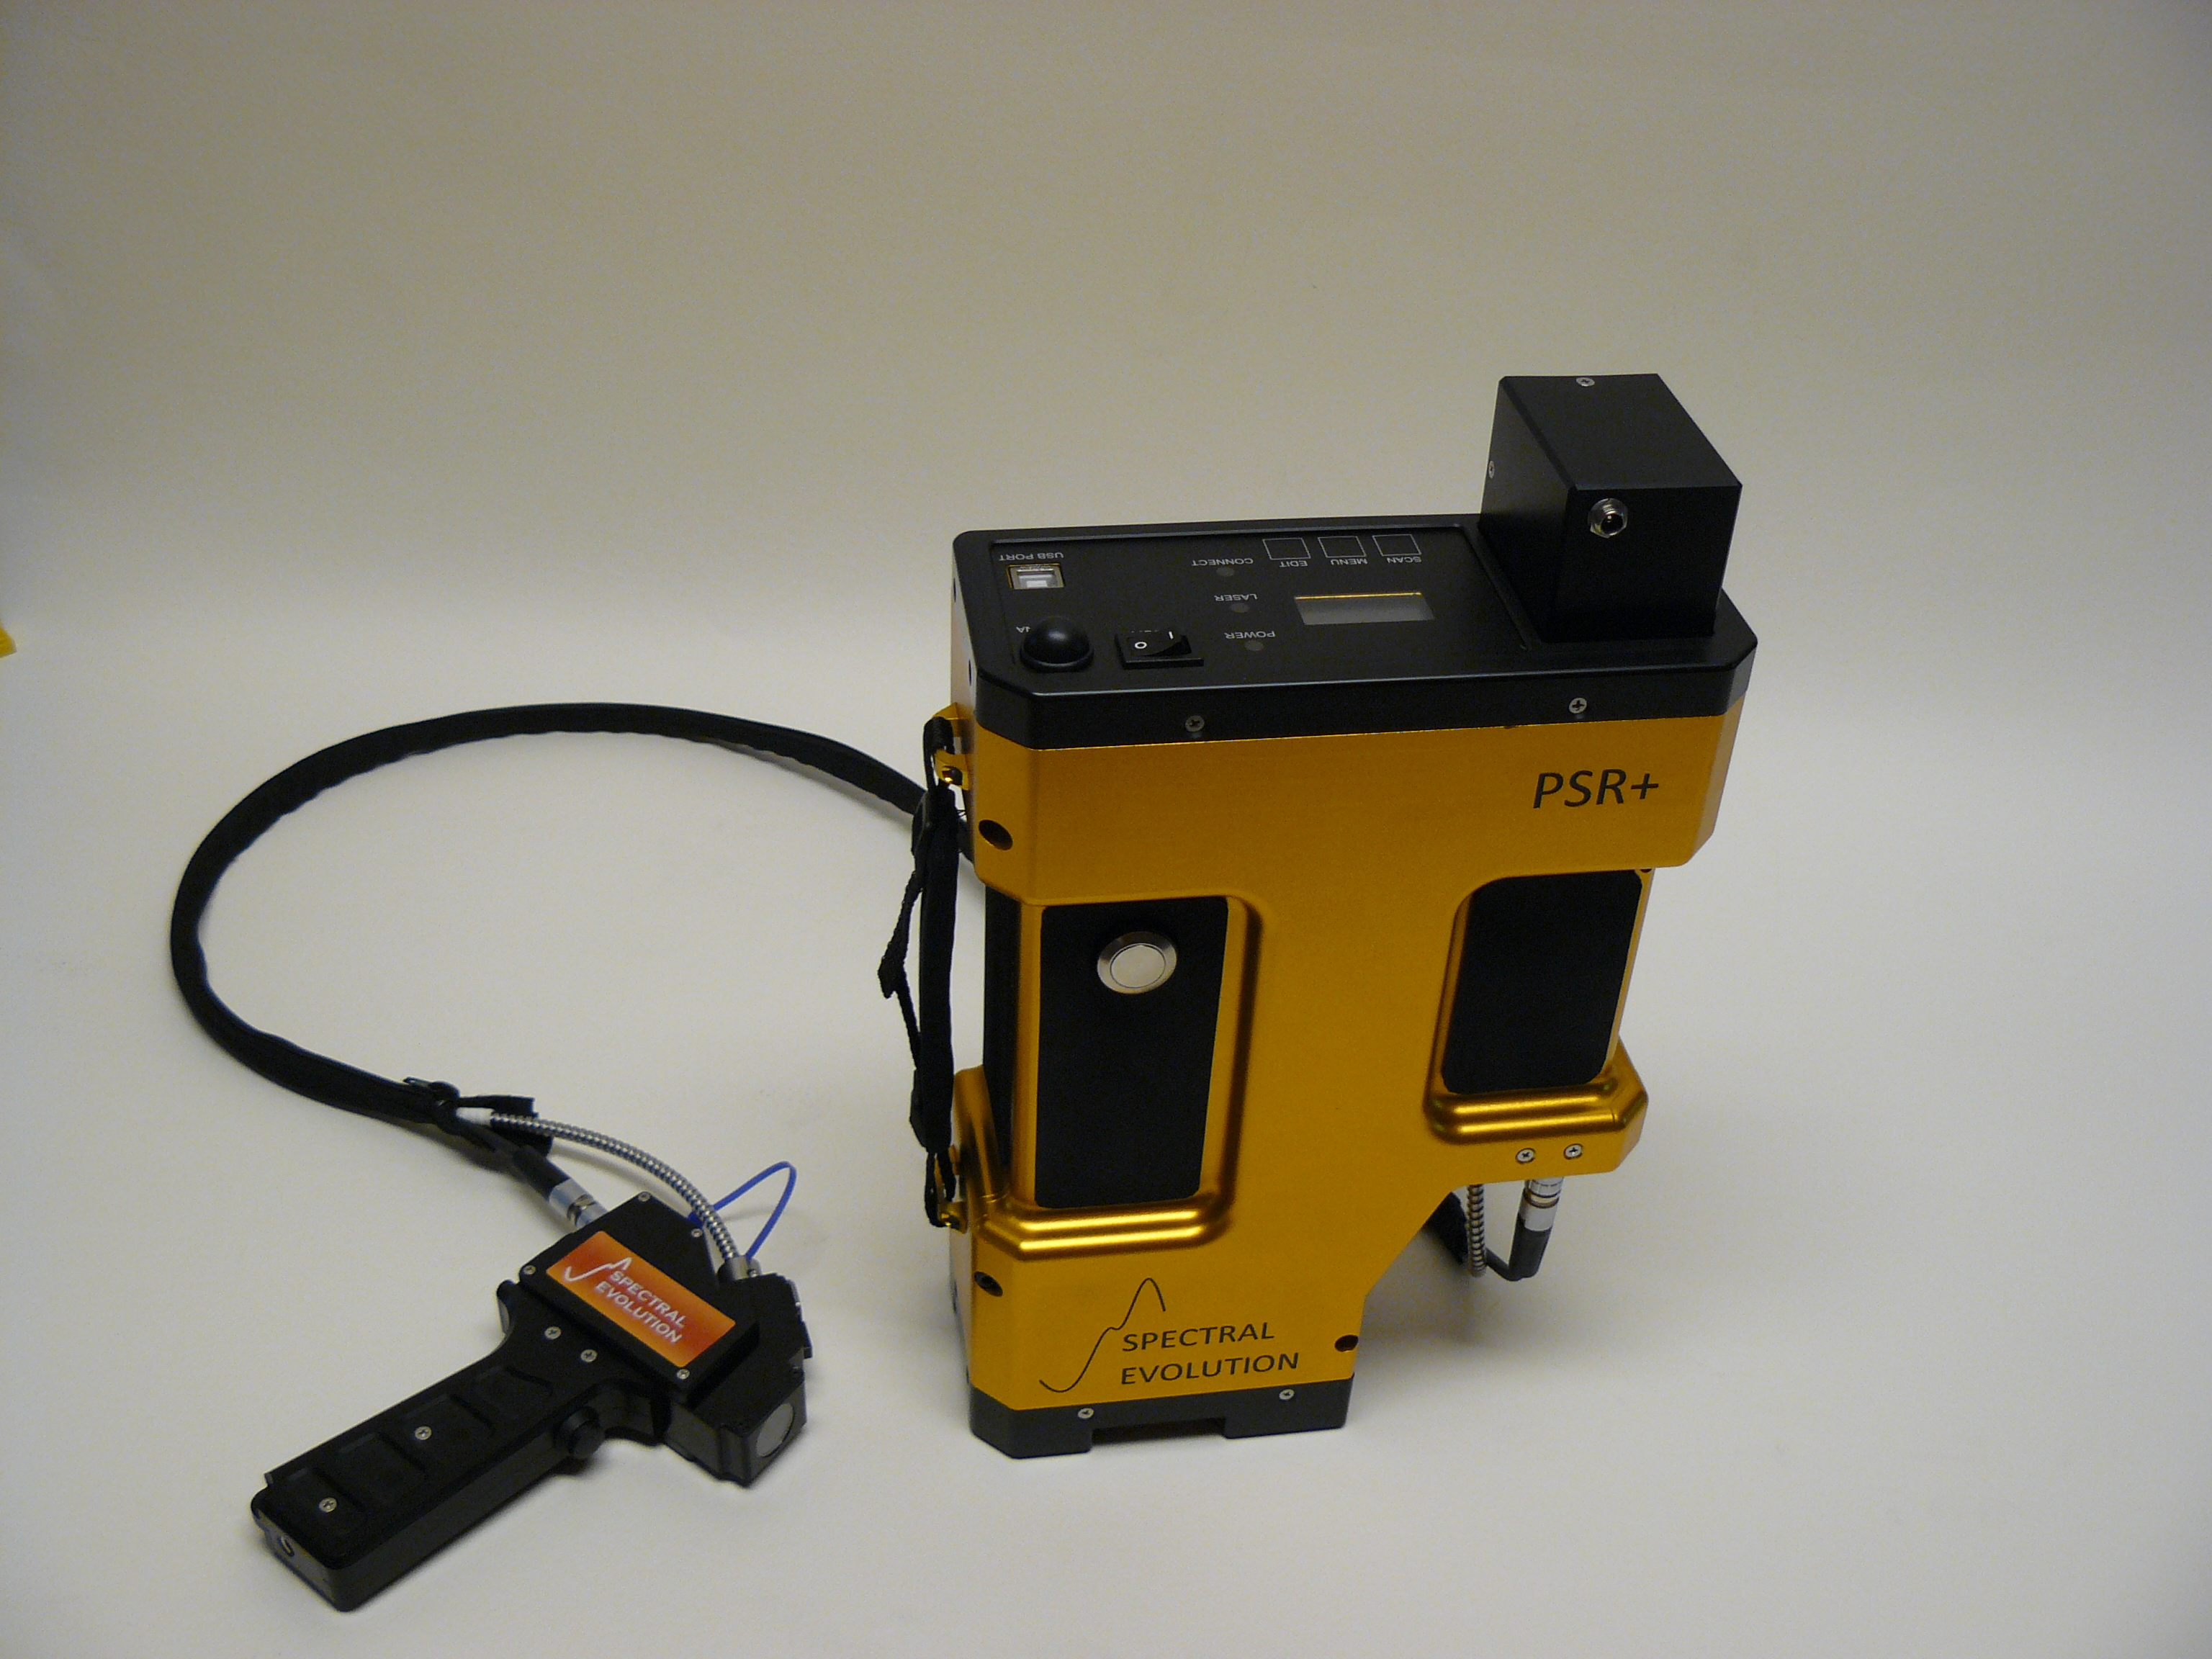 PSR+ field spectroradiometer with contact probe for soil analysis